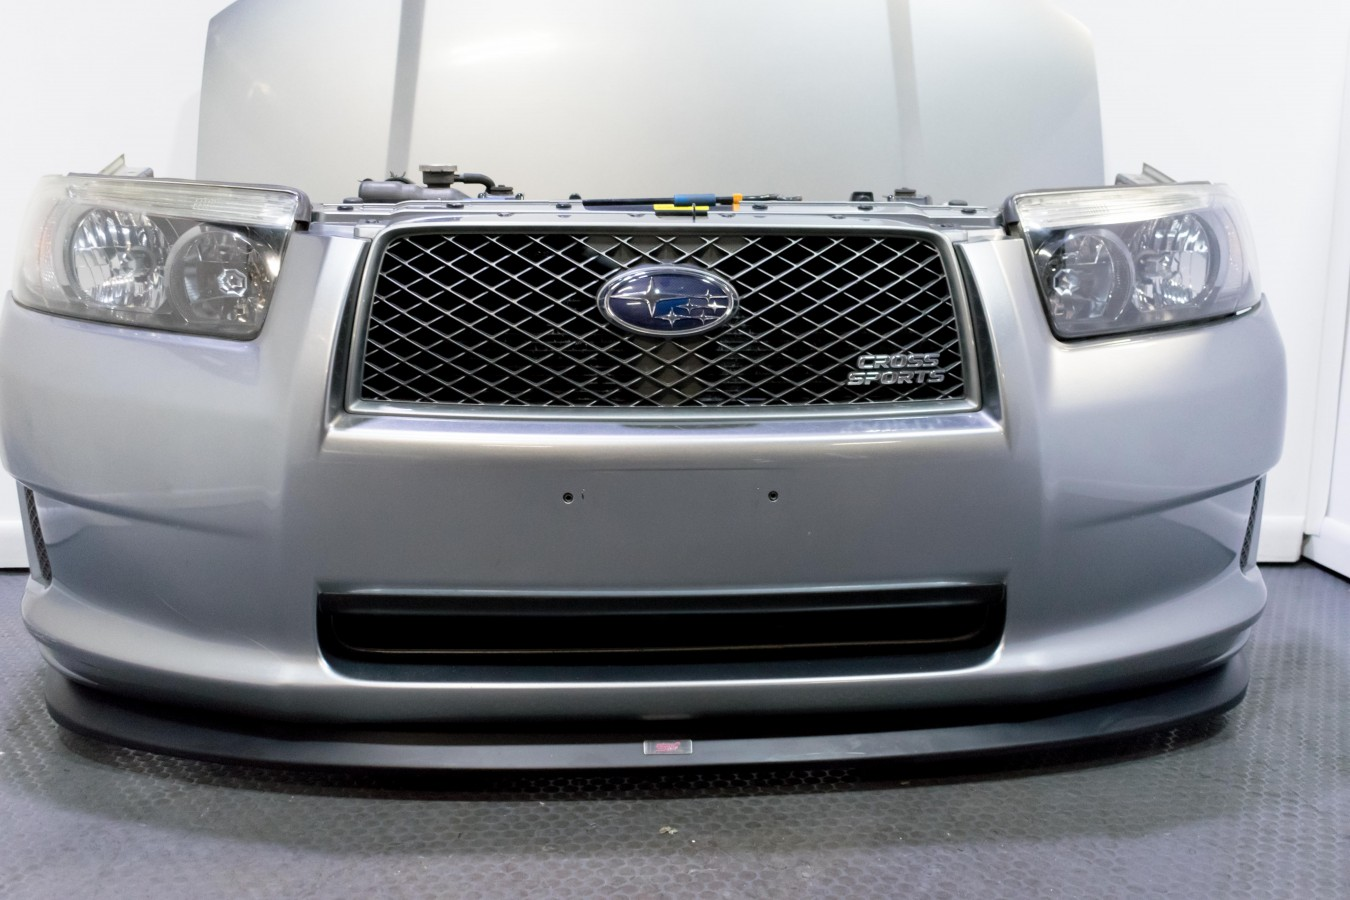 Forester Xt For Sale >> JDM 06-08 Forester SG9 Cross Sport Front End in Silver ...